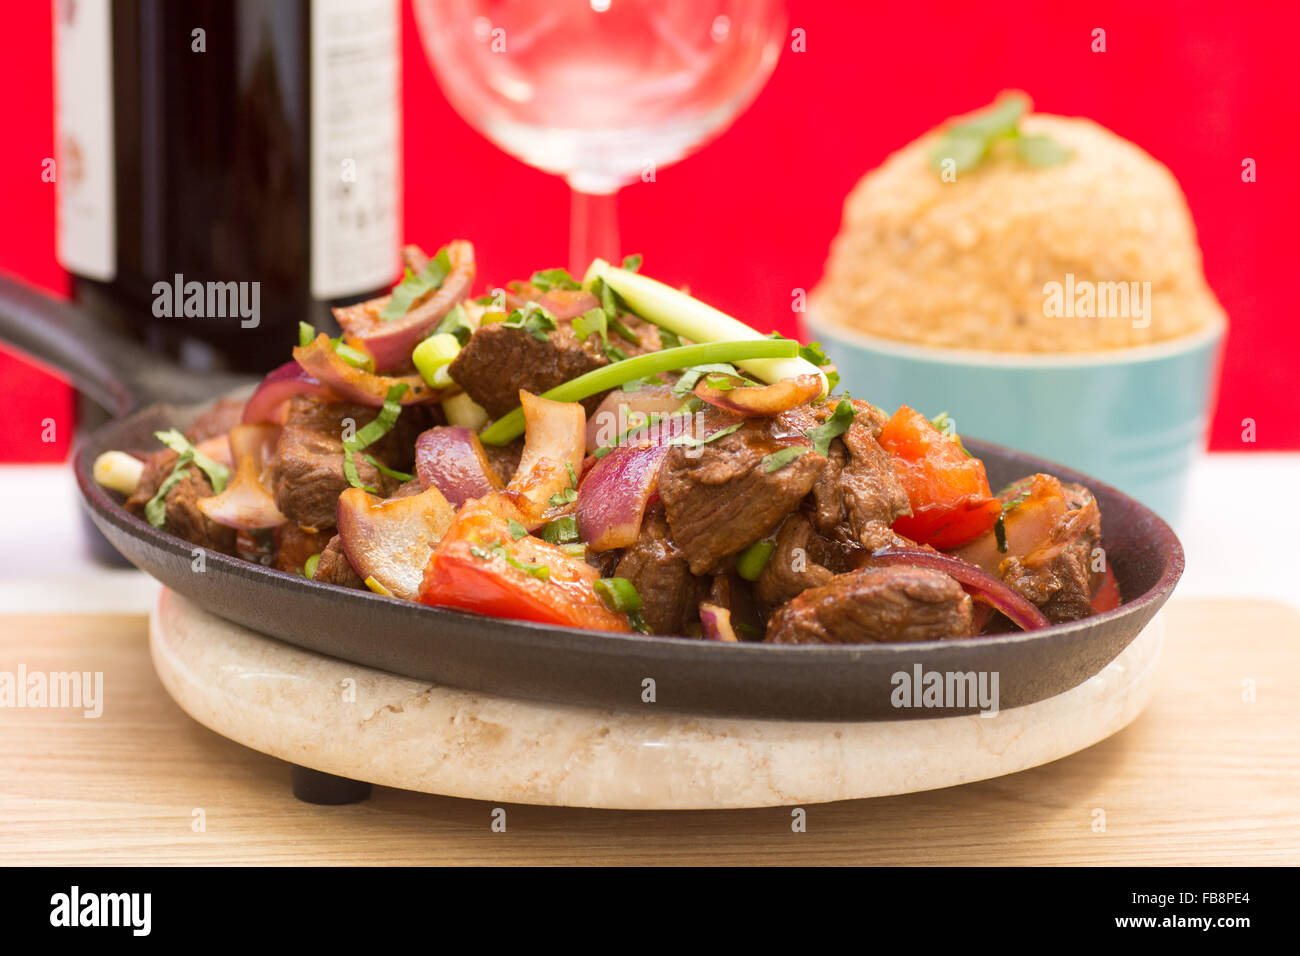 Lomo Saltado - a very popular dish in Peru of stir-fried beef with a side dish of Tacu Taco rice Stock Photo